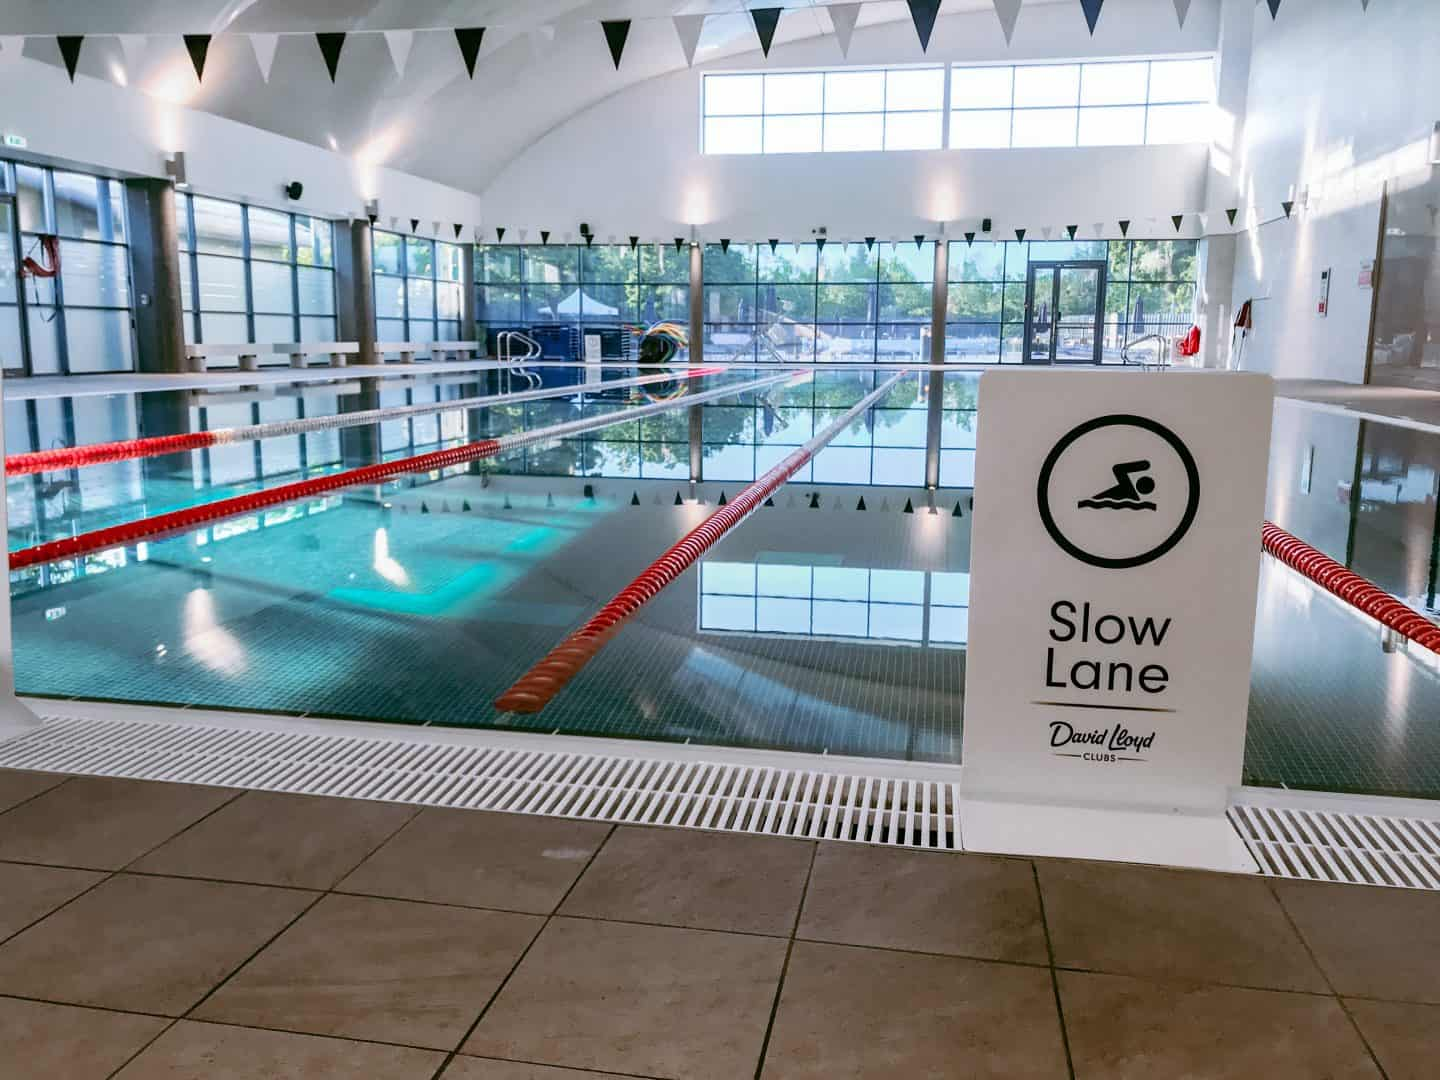 The slow lane at the newly refurbished indoor swimming pool at David LLoyd Clubs, Milton Keynes